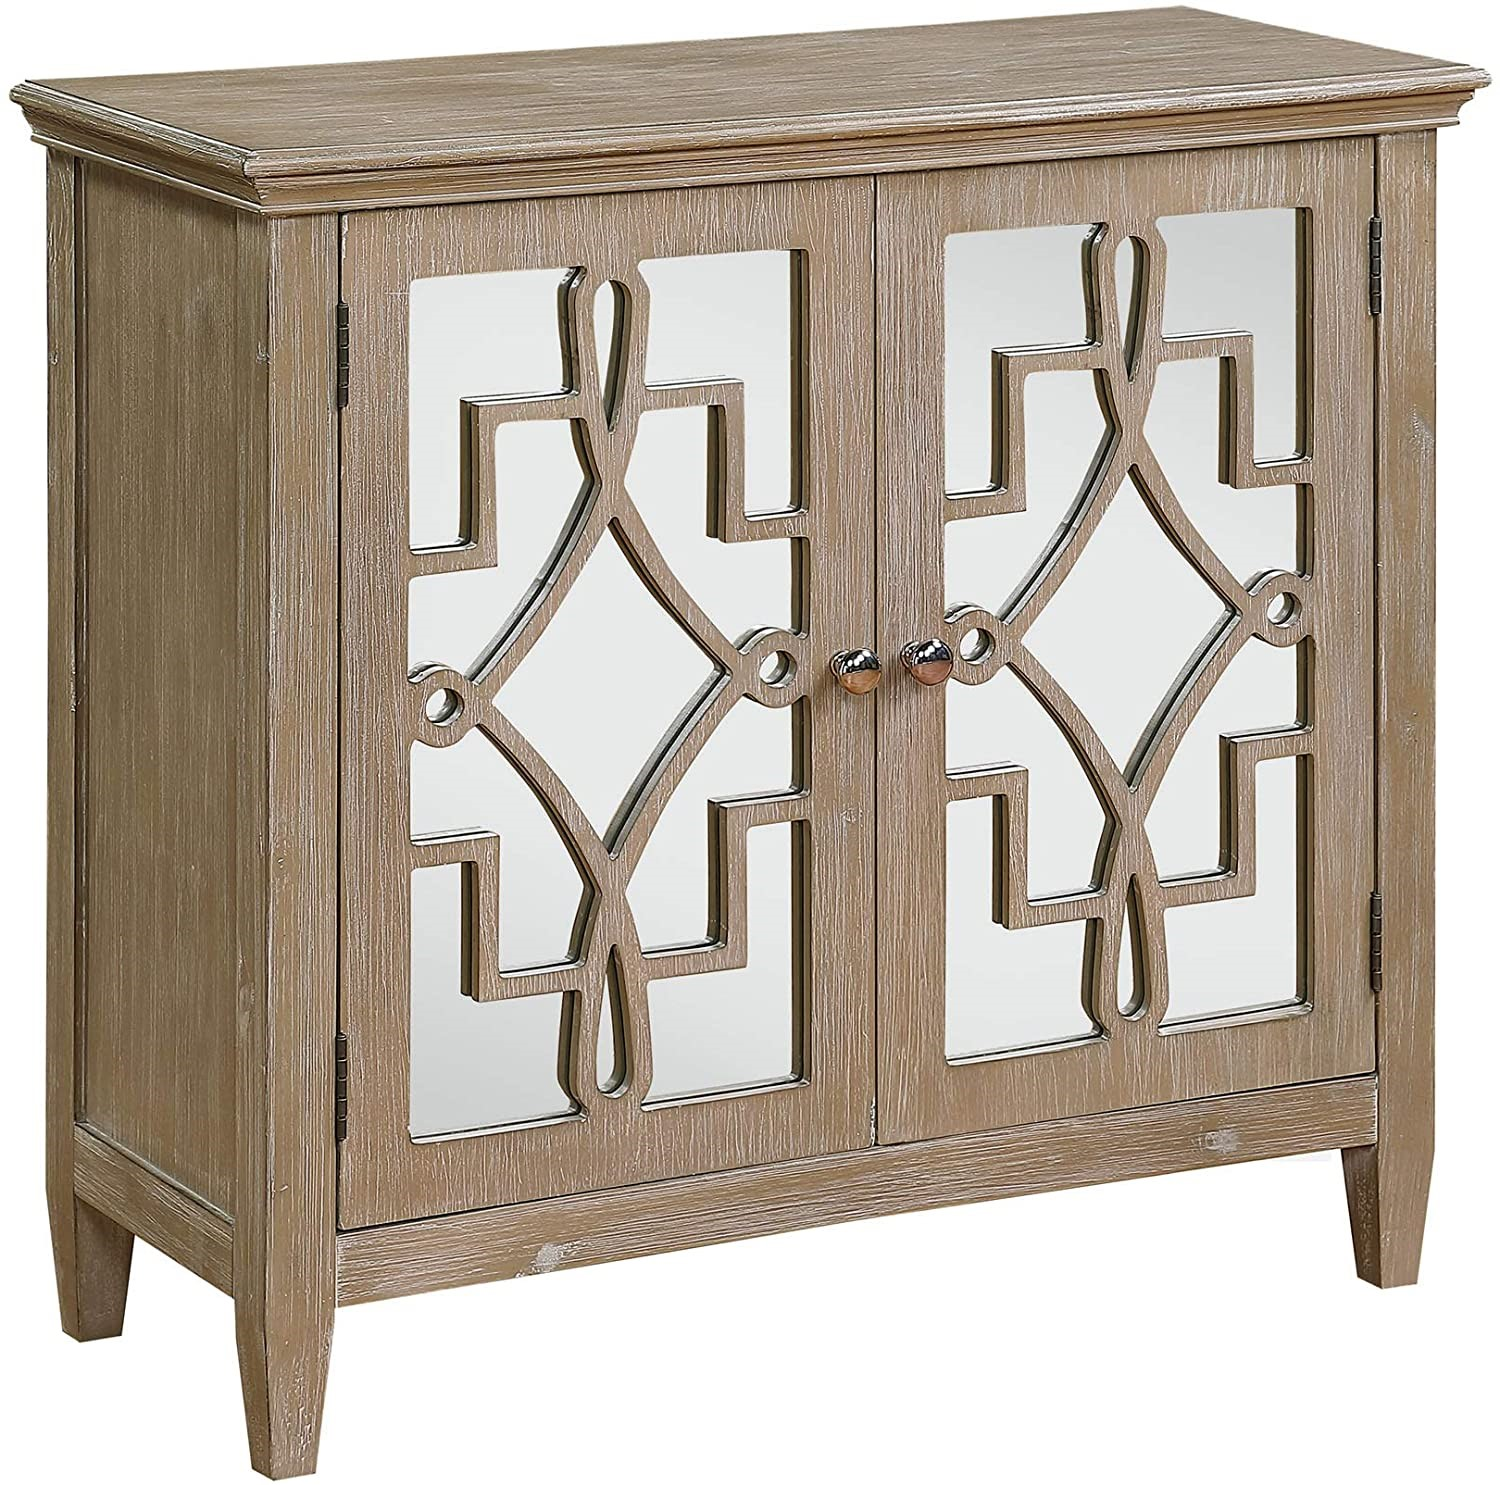 4D Concepts 100632 Lucy Accent Chest with Mirrored Doors